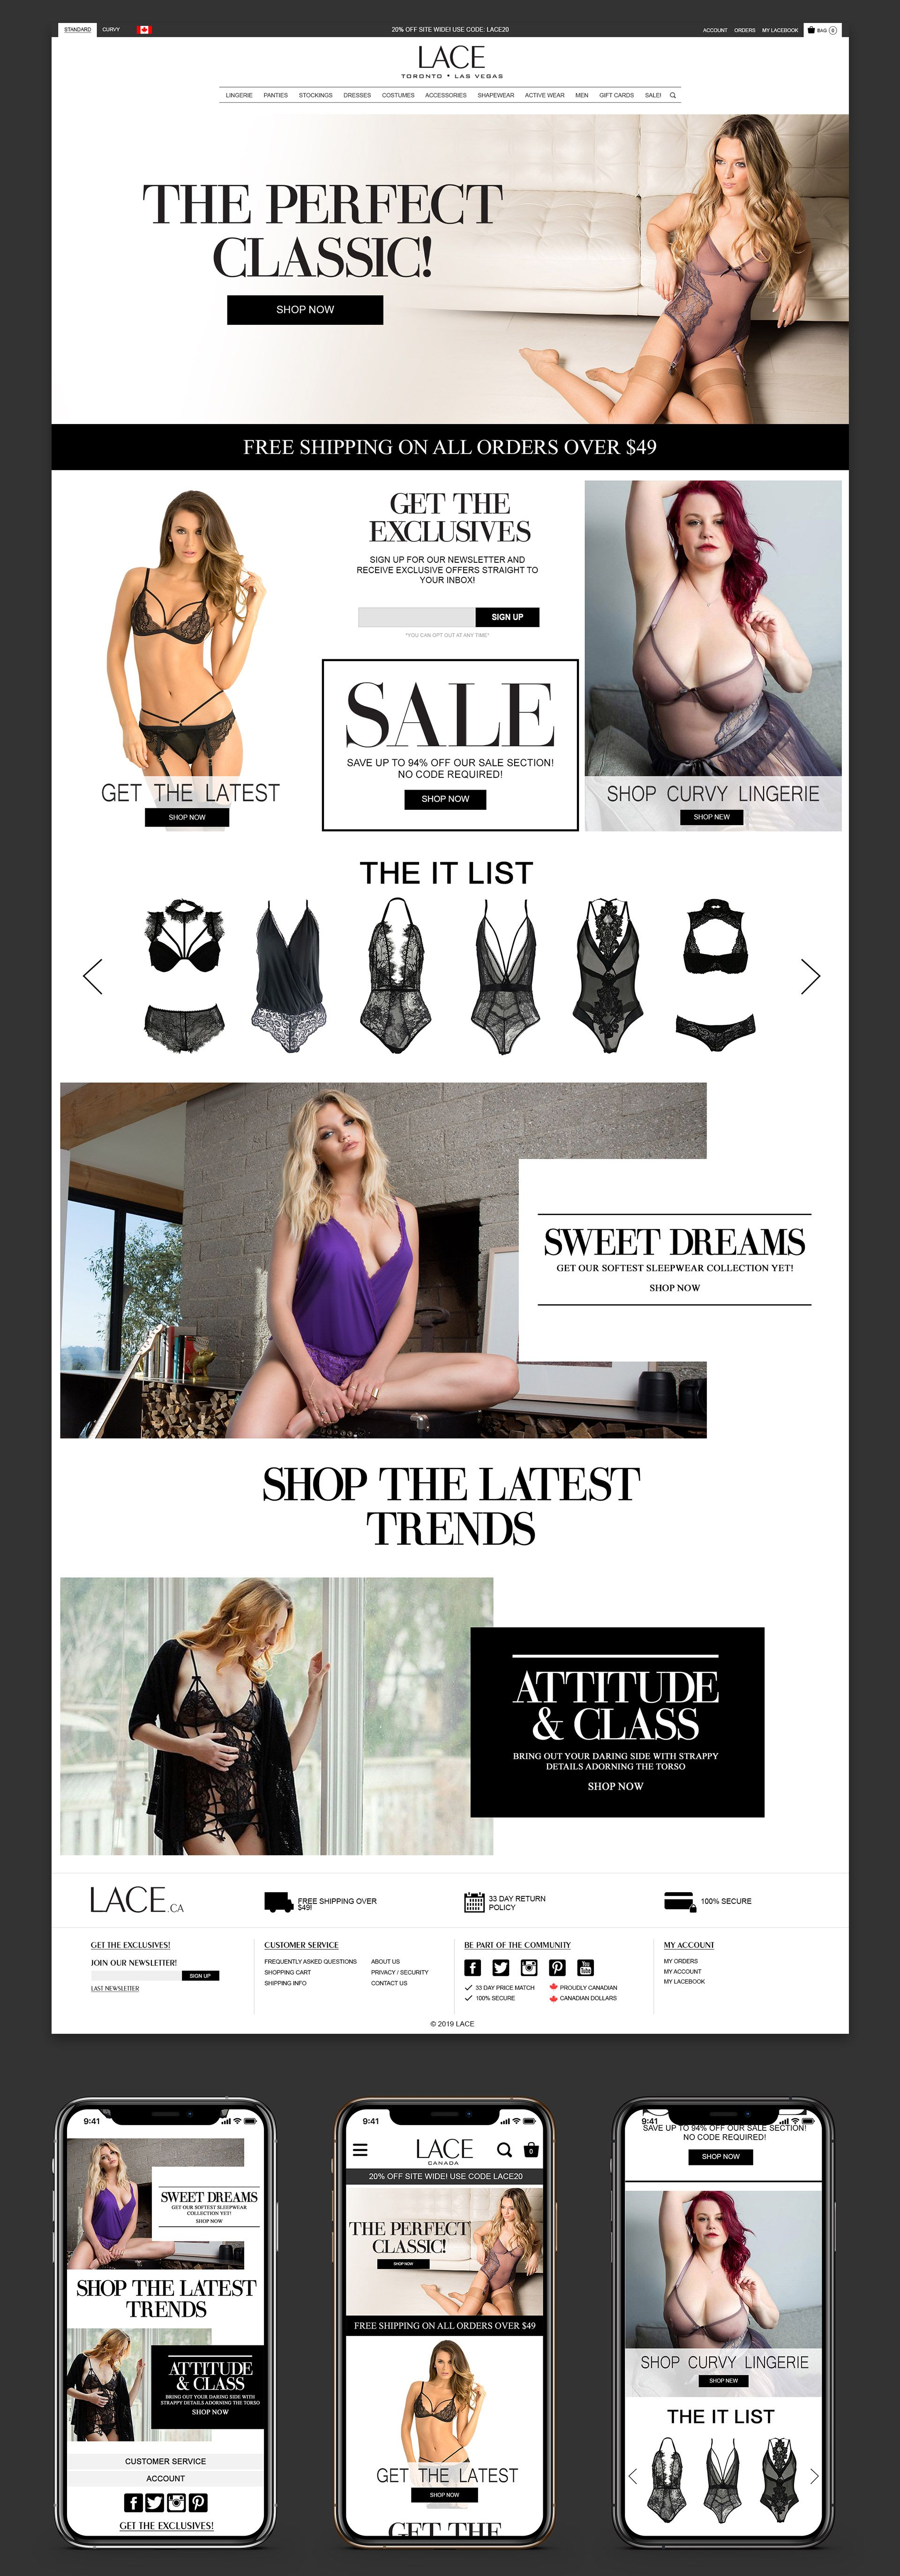 LACE Homepage Design